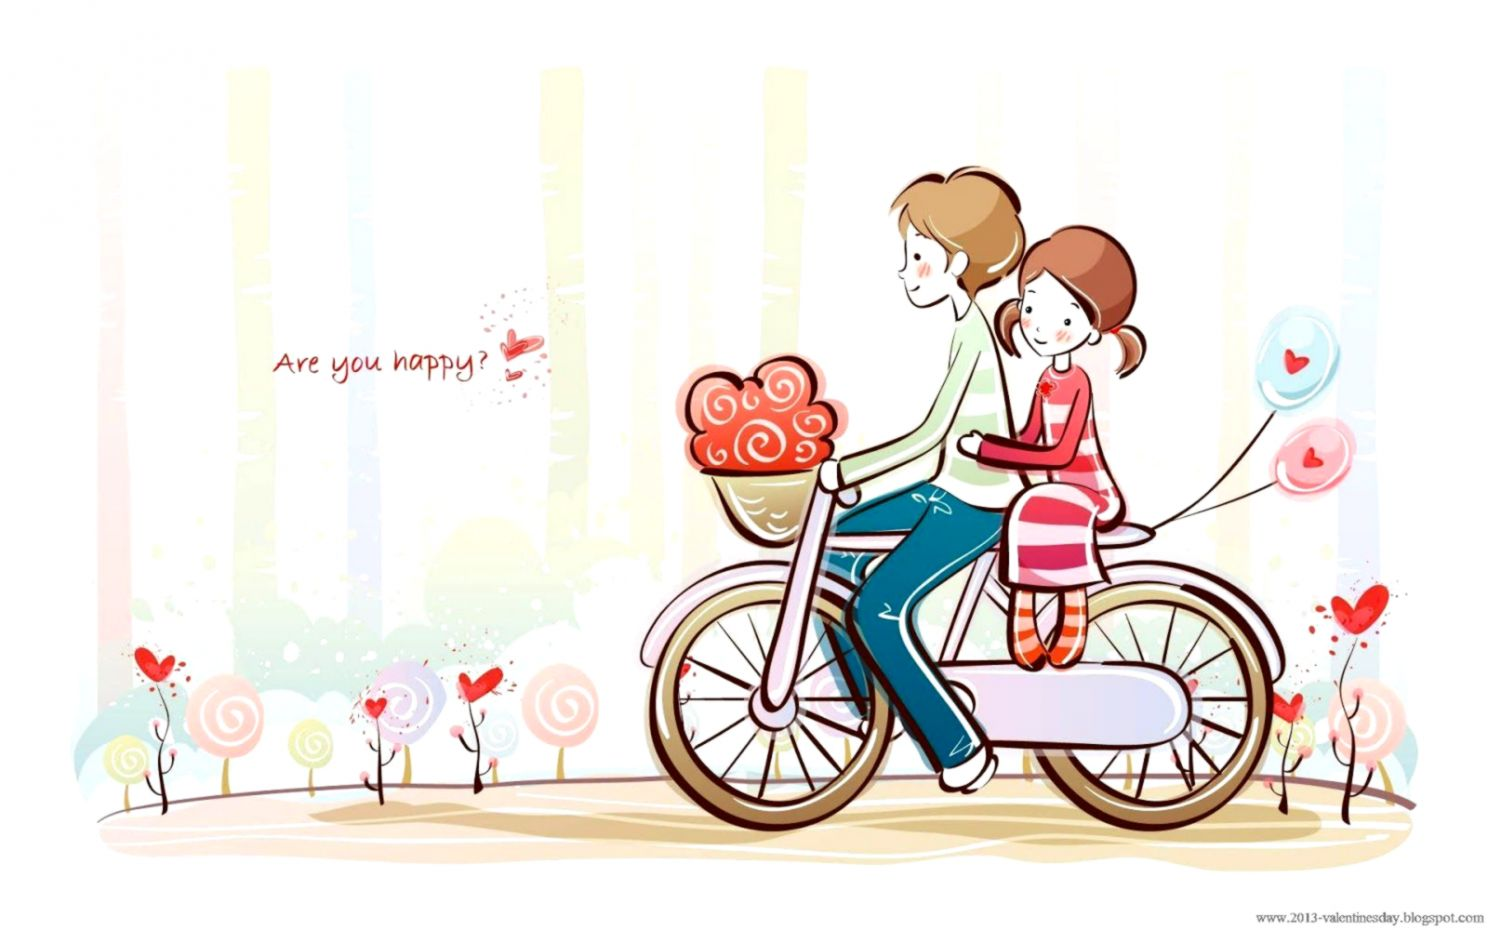 Cute Couple Cartoons Wallpapers Wallpapers Minimalist